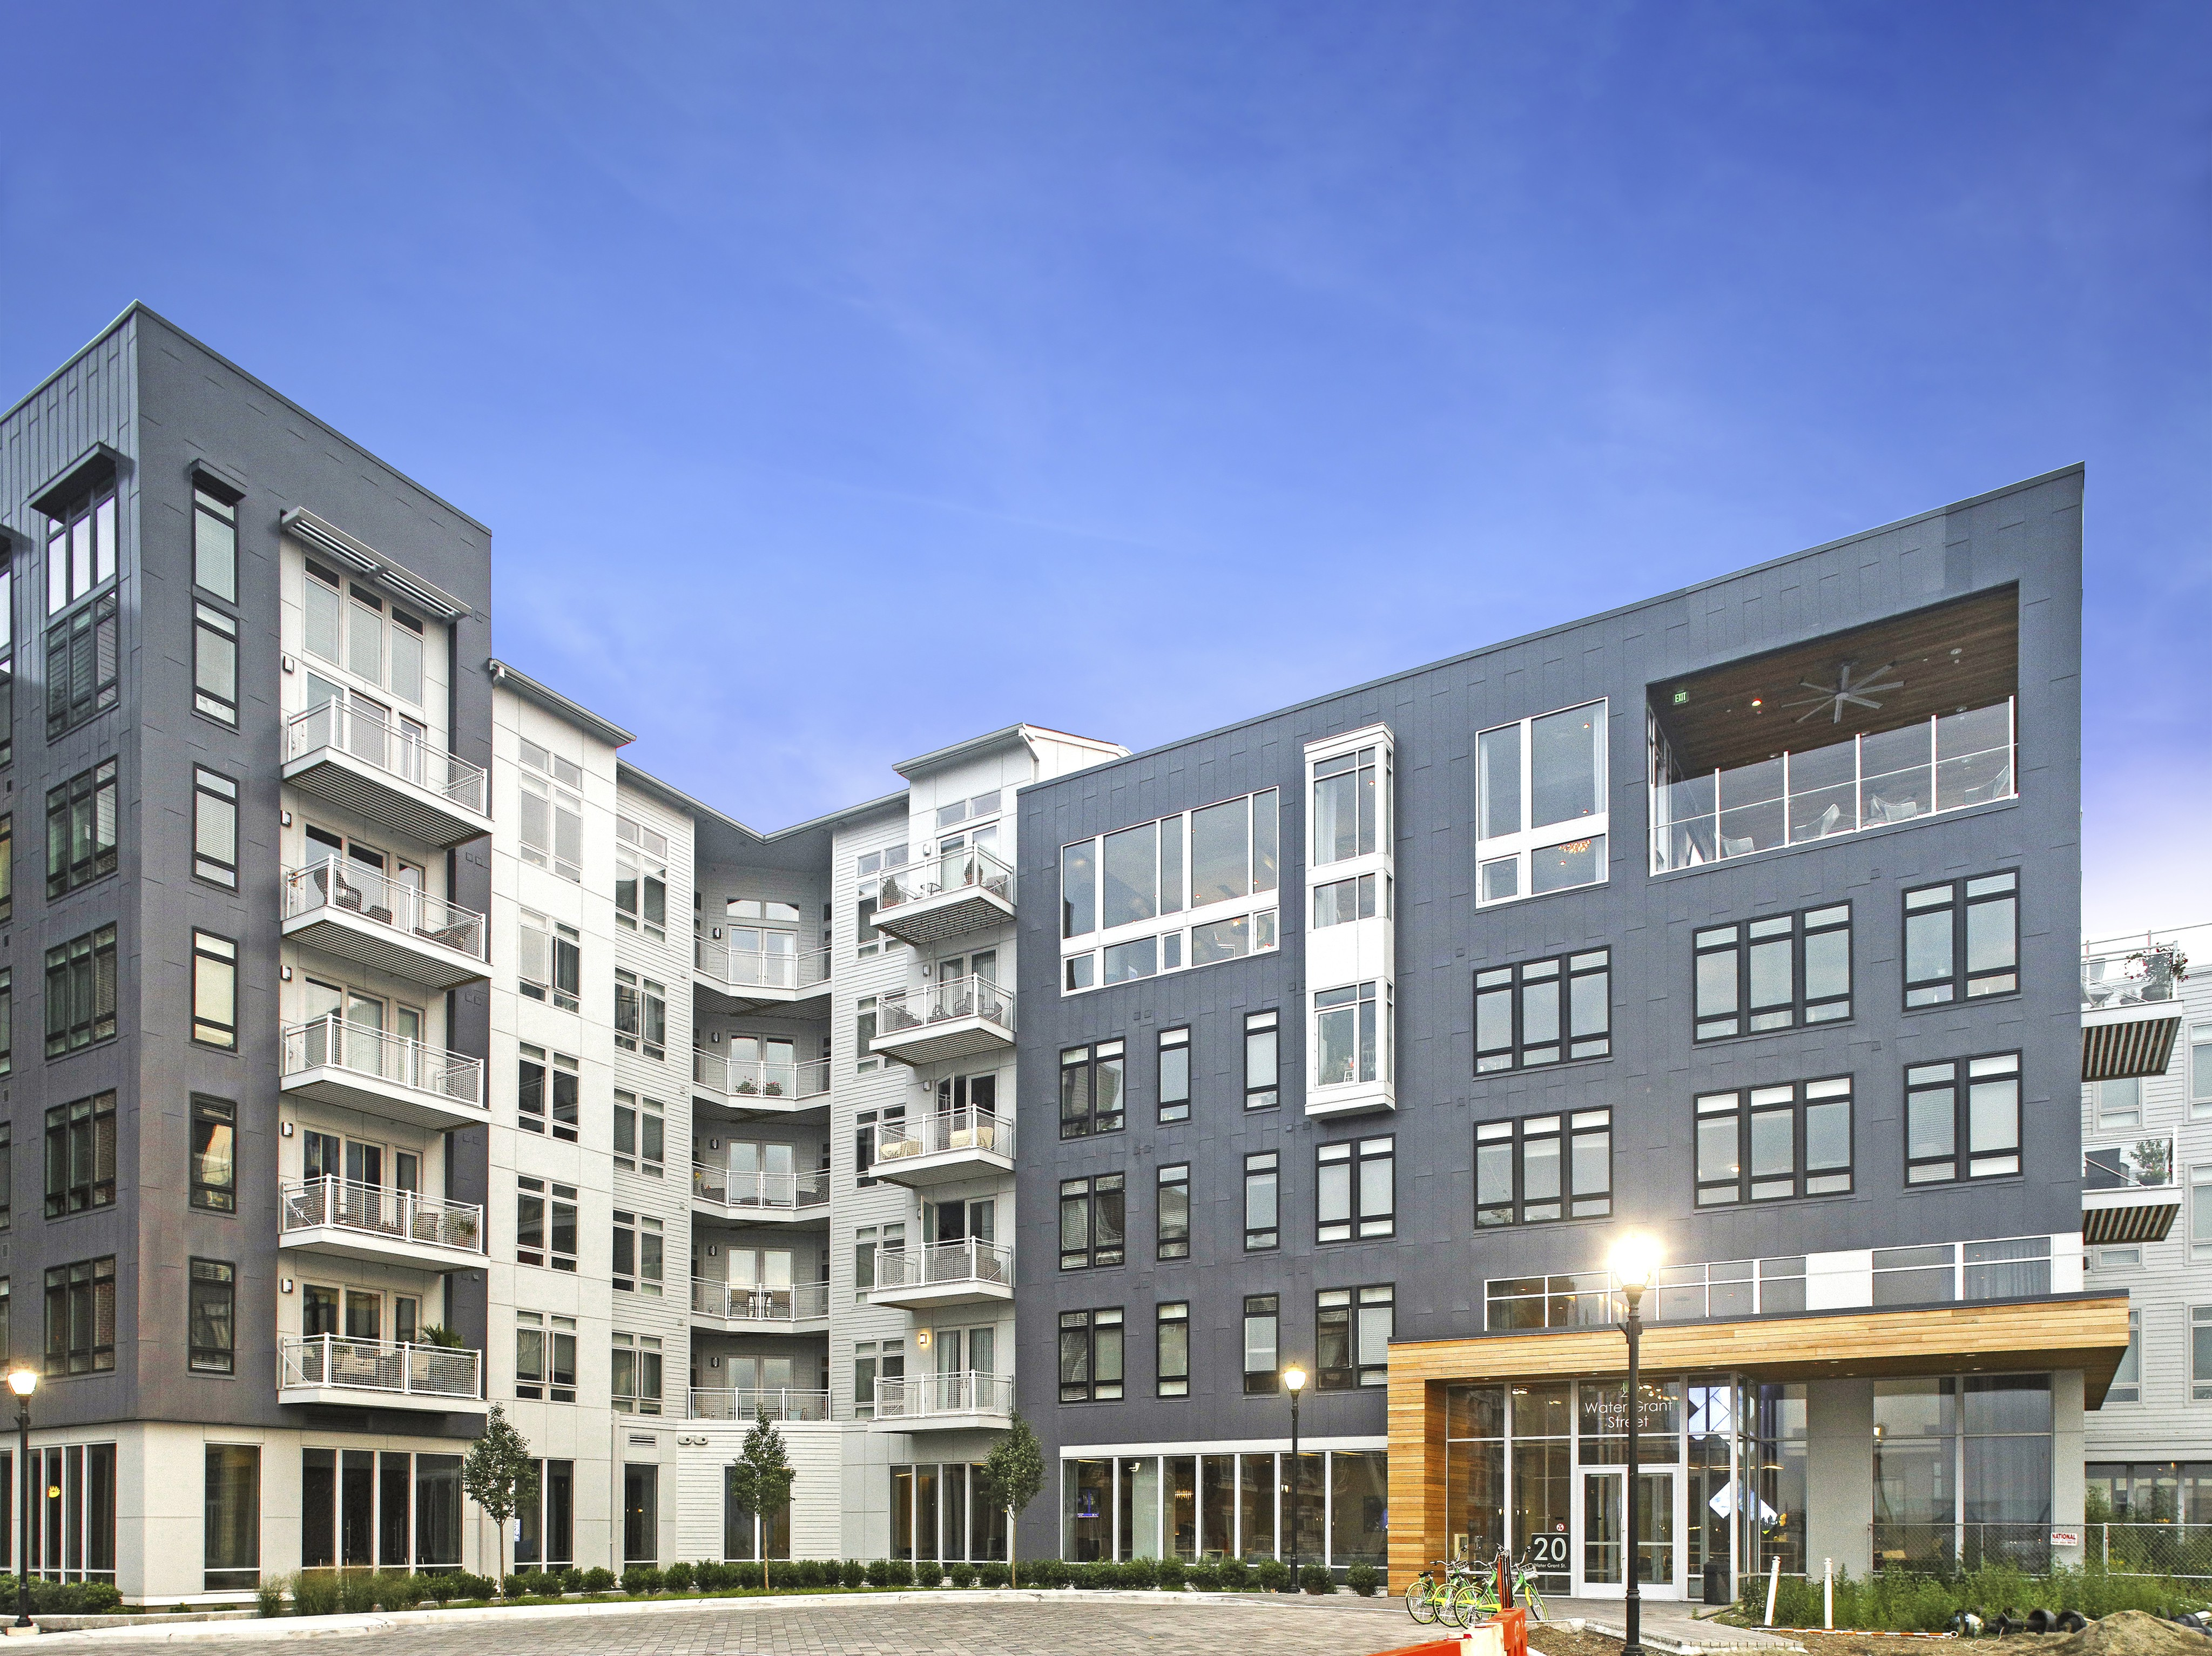 Apartments Near Sarah Lawrence Apex Hudson Riverfront for Sarah Lawrence College Students in Bronxville, NY